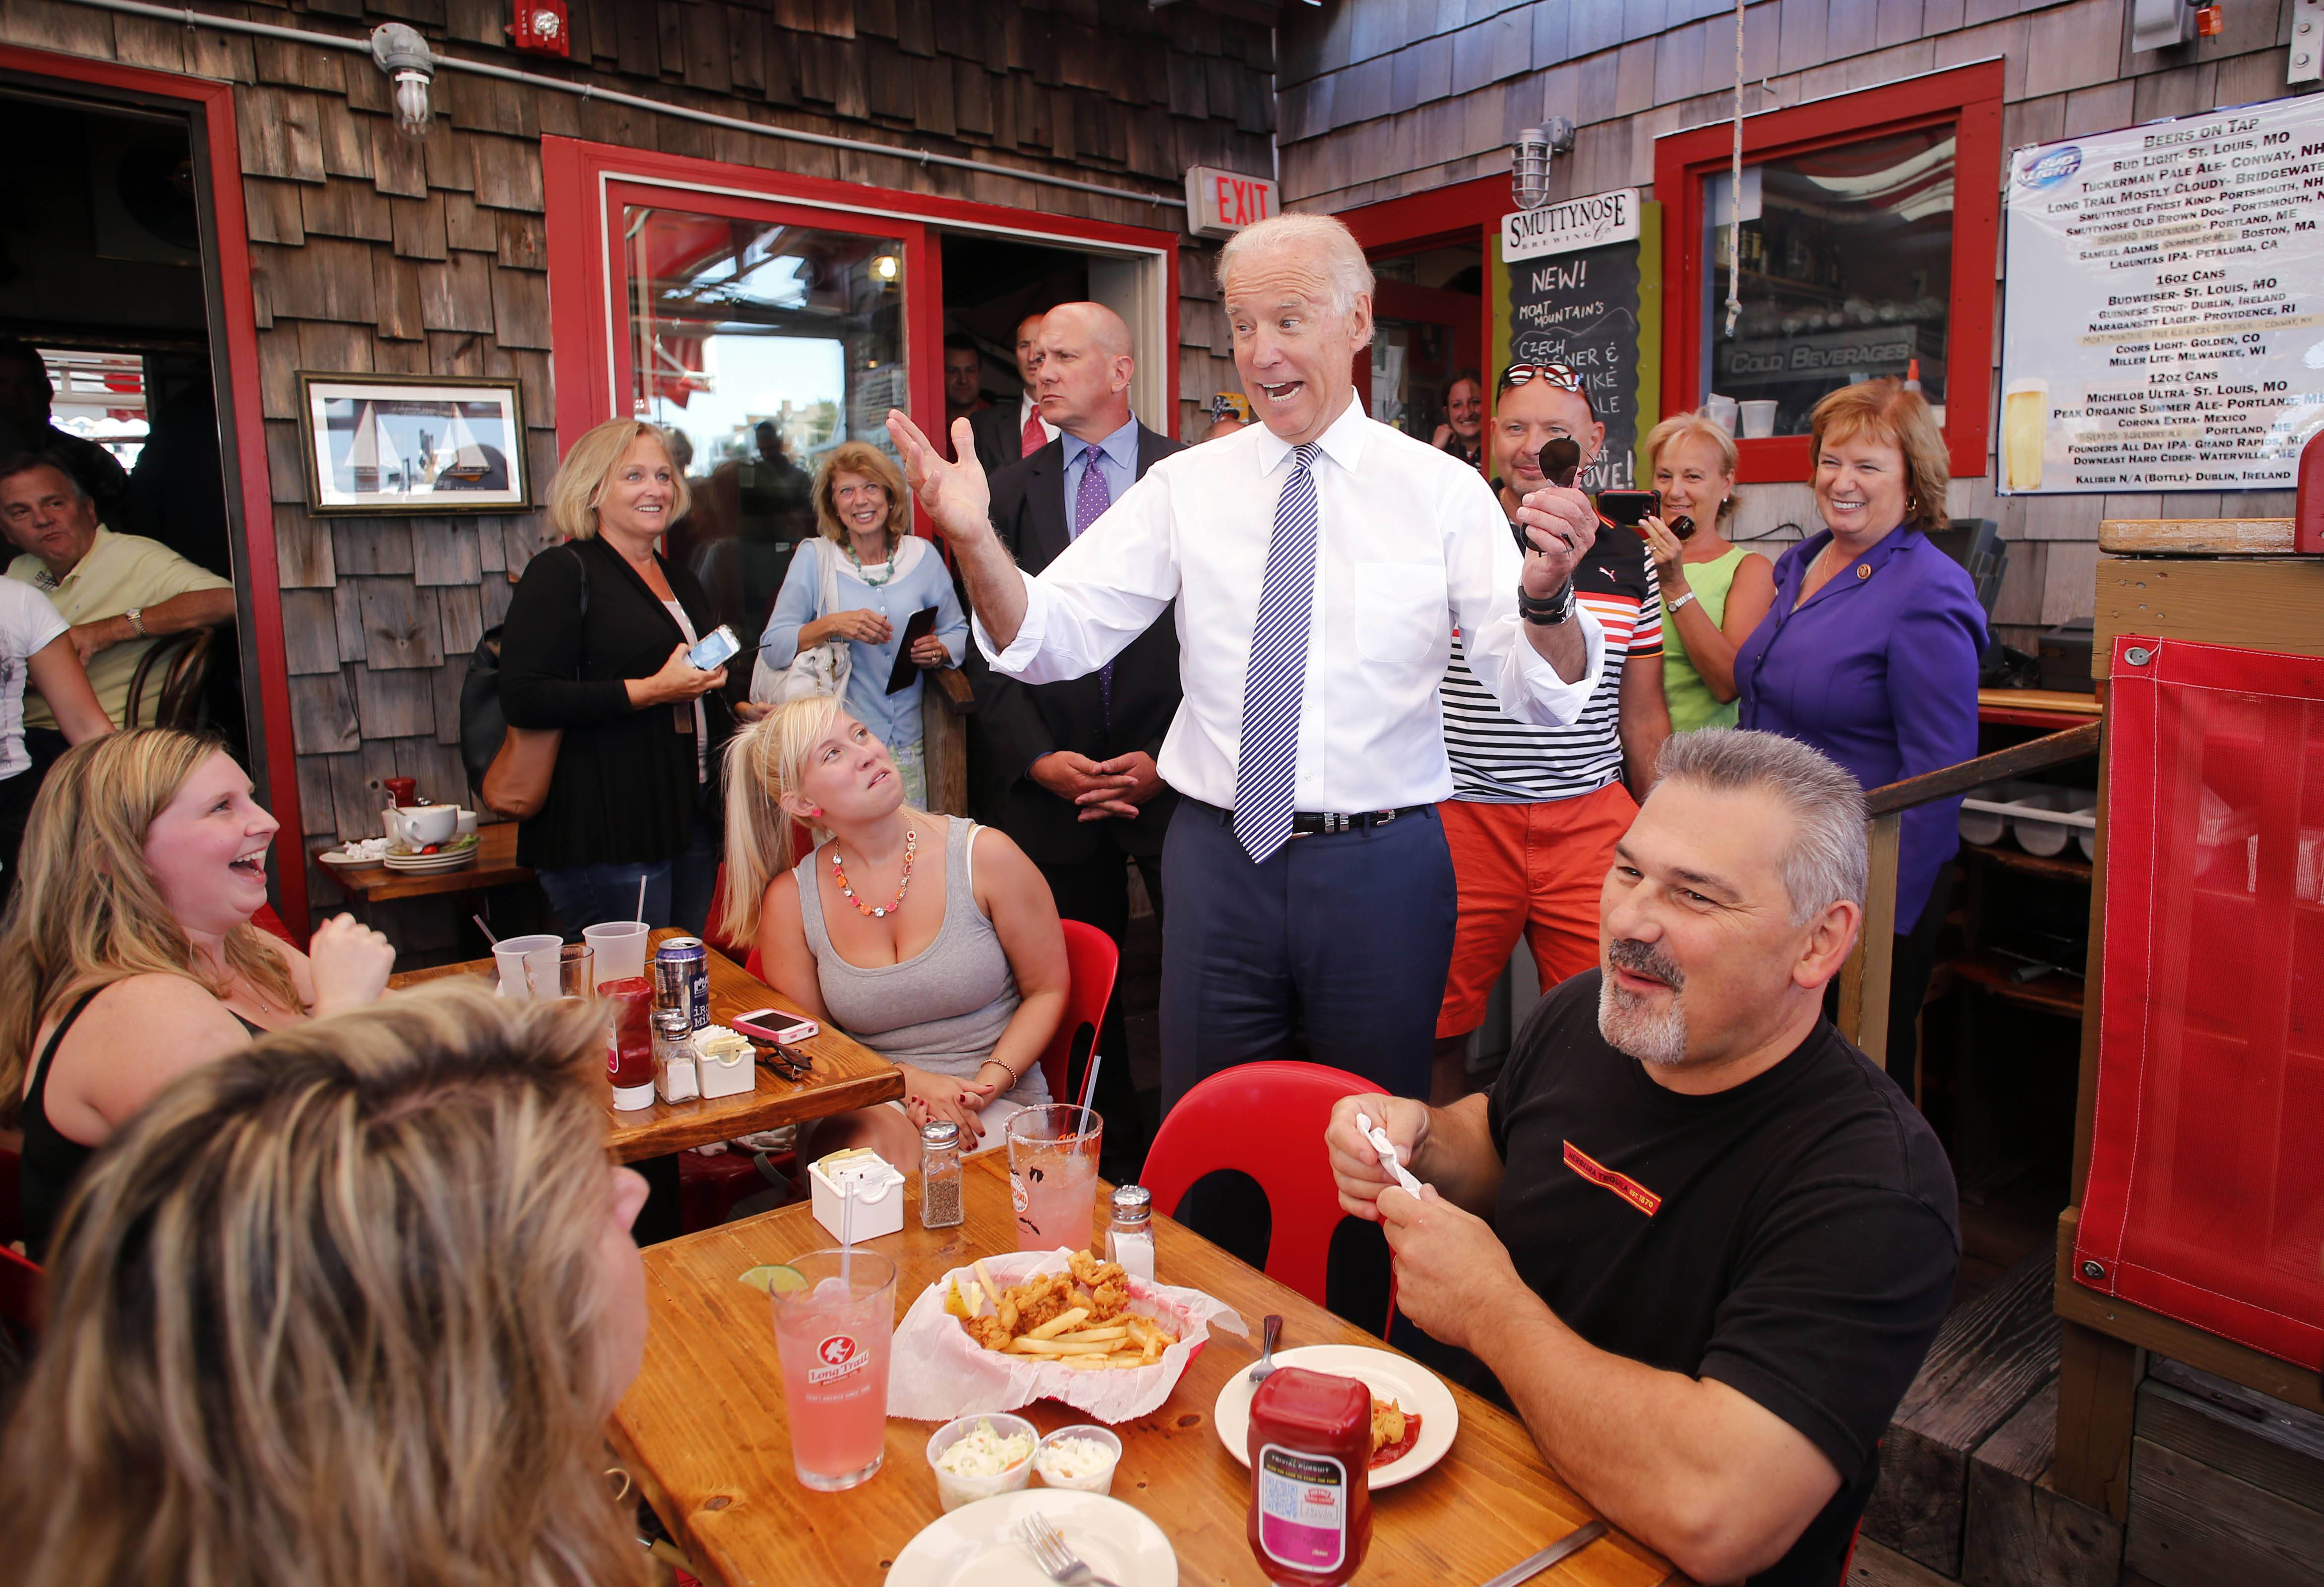 Vice President Joe Biden greets patrons at the Old Ferry Landing restaurant Wednesday while making a stop for lunch in Portsmouth, N.H.